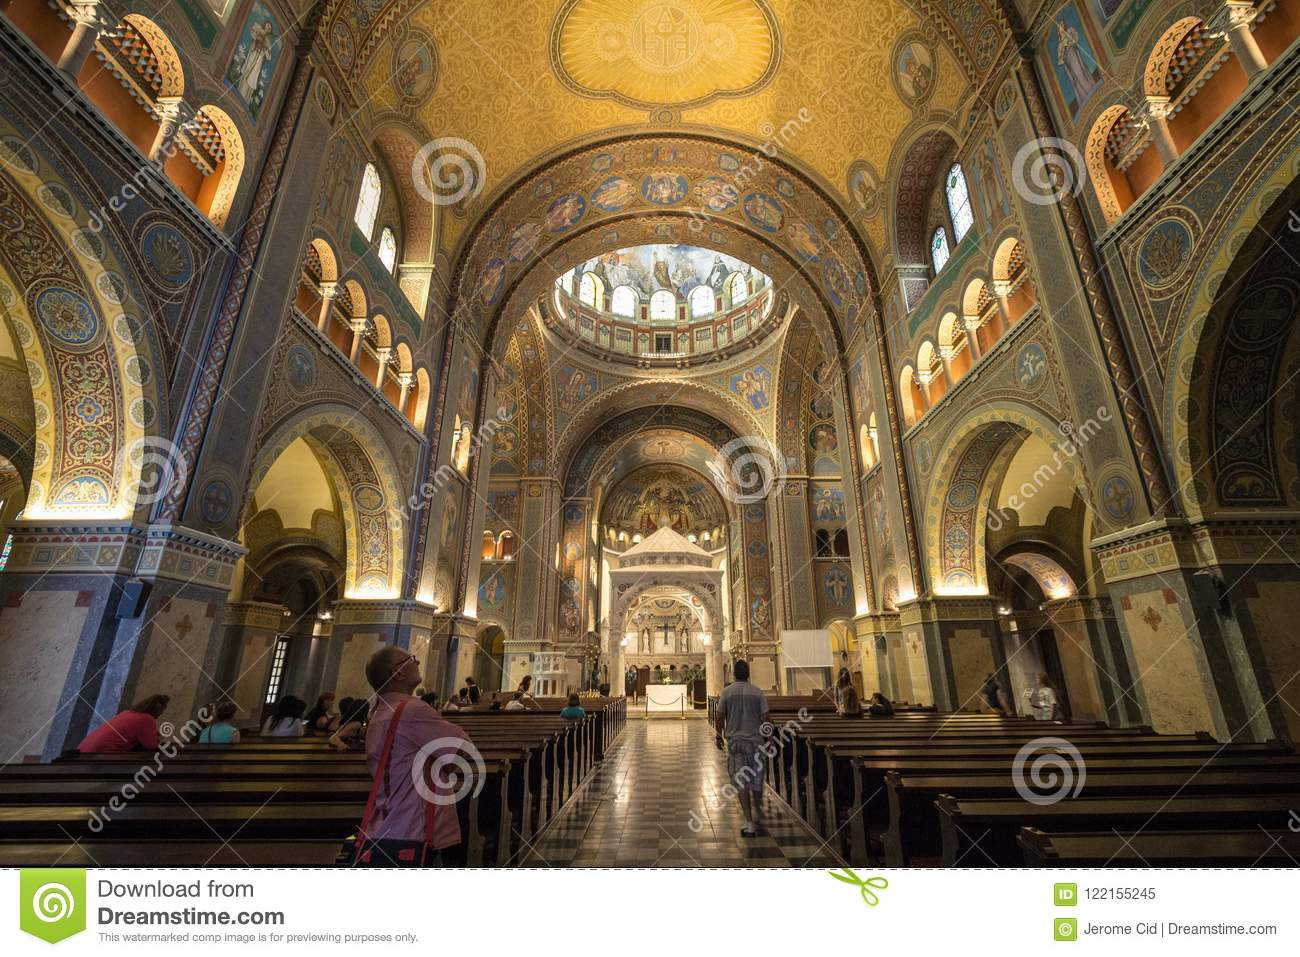 Interior of Szeged cathedral, with the frescoes, altar and transept. This cathedral Szegedi Dom is one of the symbols of Szeged